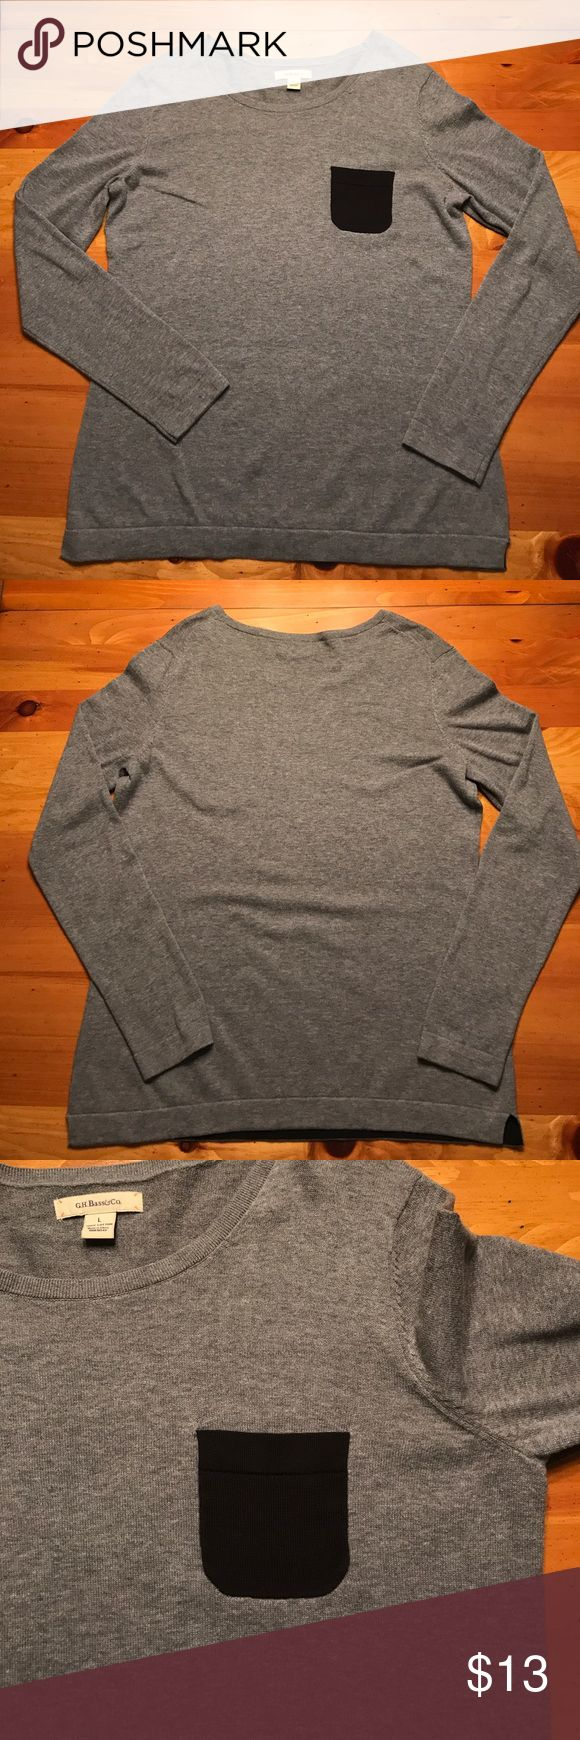 🆕 GH Bass Pocket Sweater Gray long sleeve sweater with black pocket. Gently worn and in good condition with slight wear around the armpit, shown in picture. Armpit to armpit measures 20 inches and the length from the armpit to the bottom hem measures 19 inches. Reasonable offers welcome! Bass Sweaters Crew & Scoop Necks